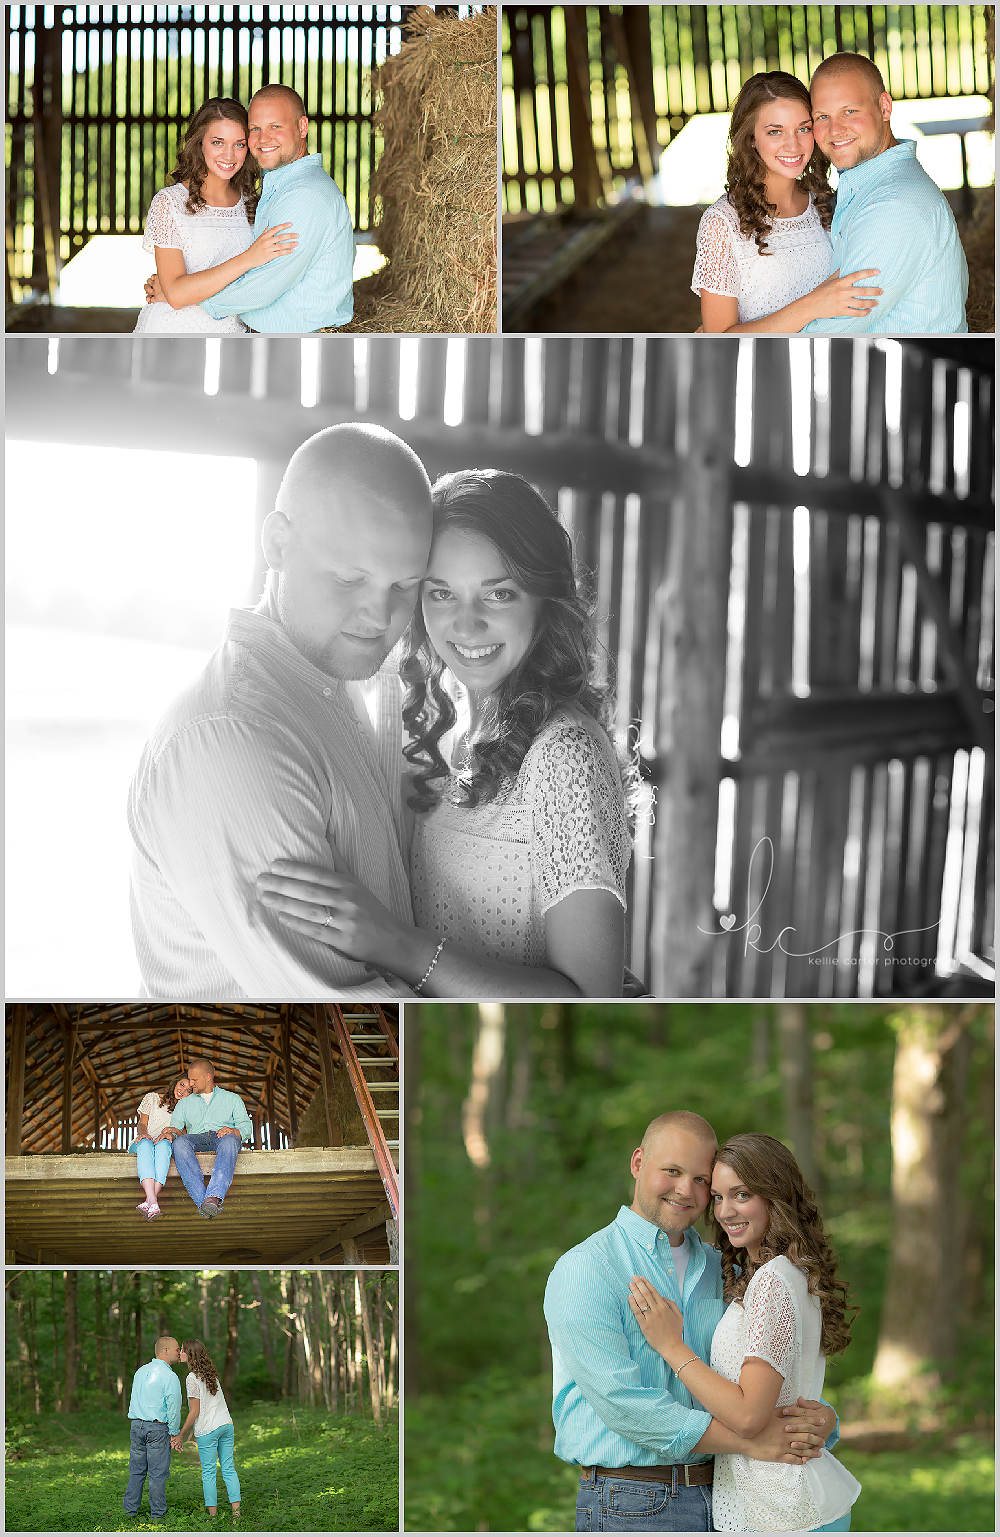 Kellie Carter Photography Maggie & Jacob are Getting Married {Wedding Photographer | Monticello, KY}